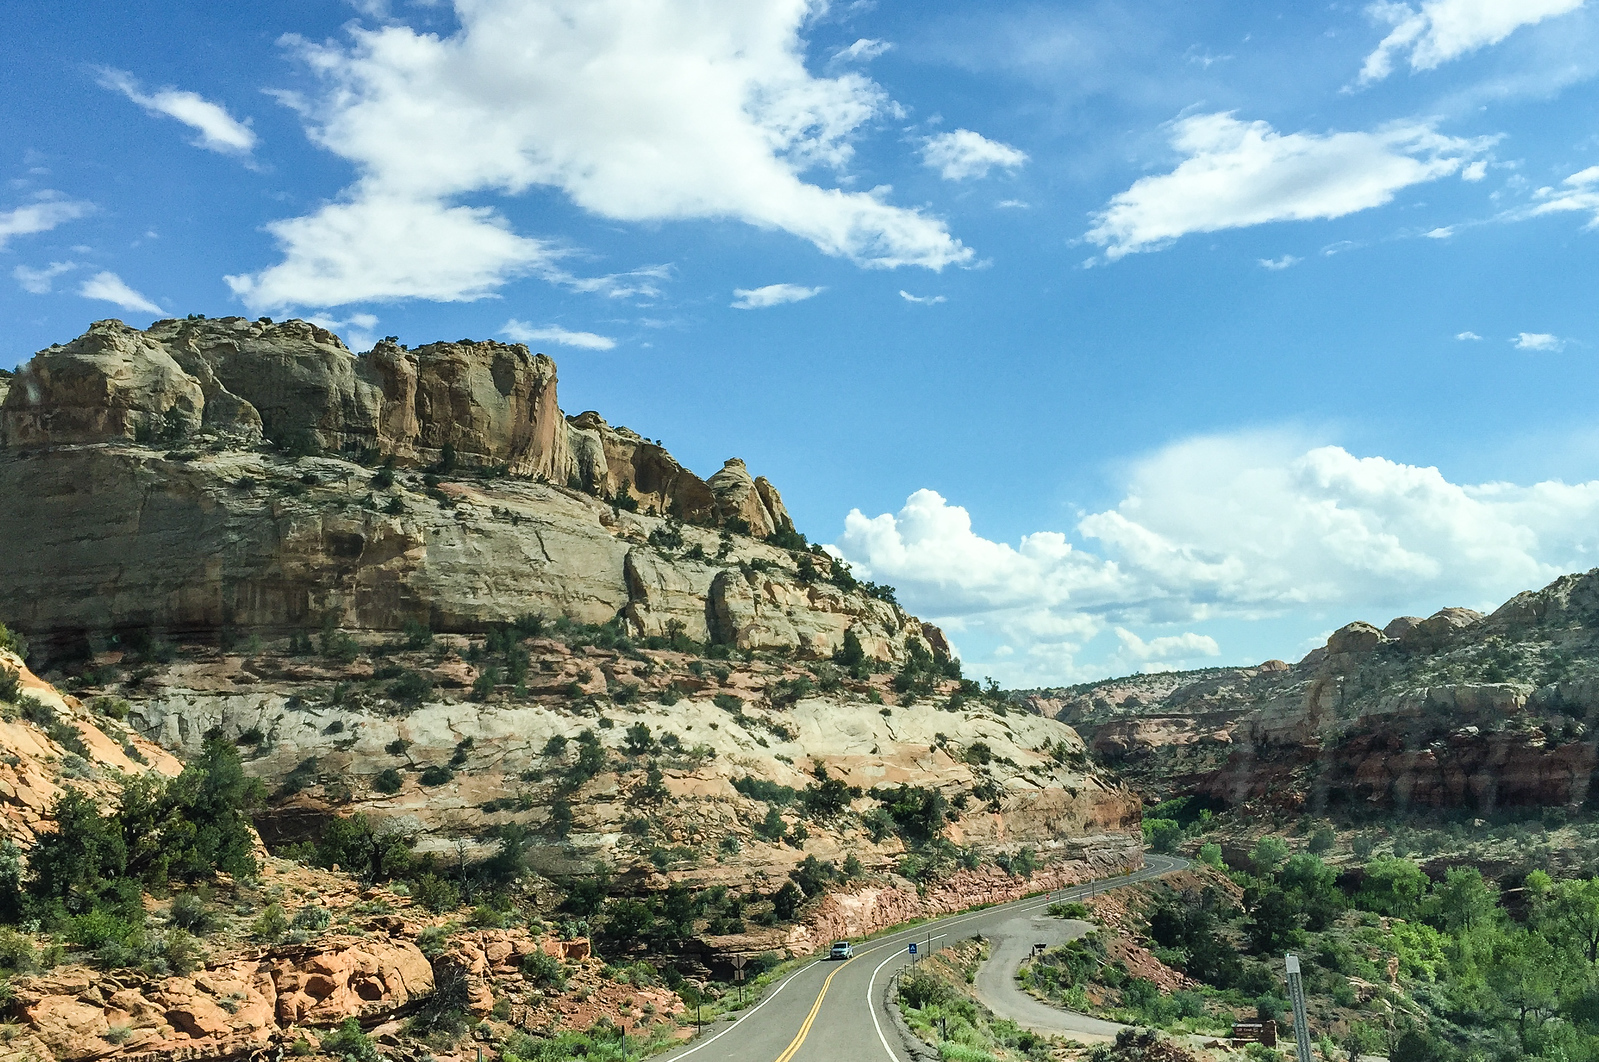 Read our tips on how to drive Highway 12 Scenic Byway in Utah, including where to stay, what to see and what to do on this fun Utah road trip.